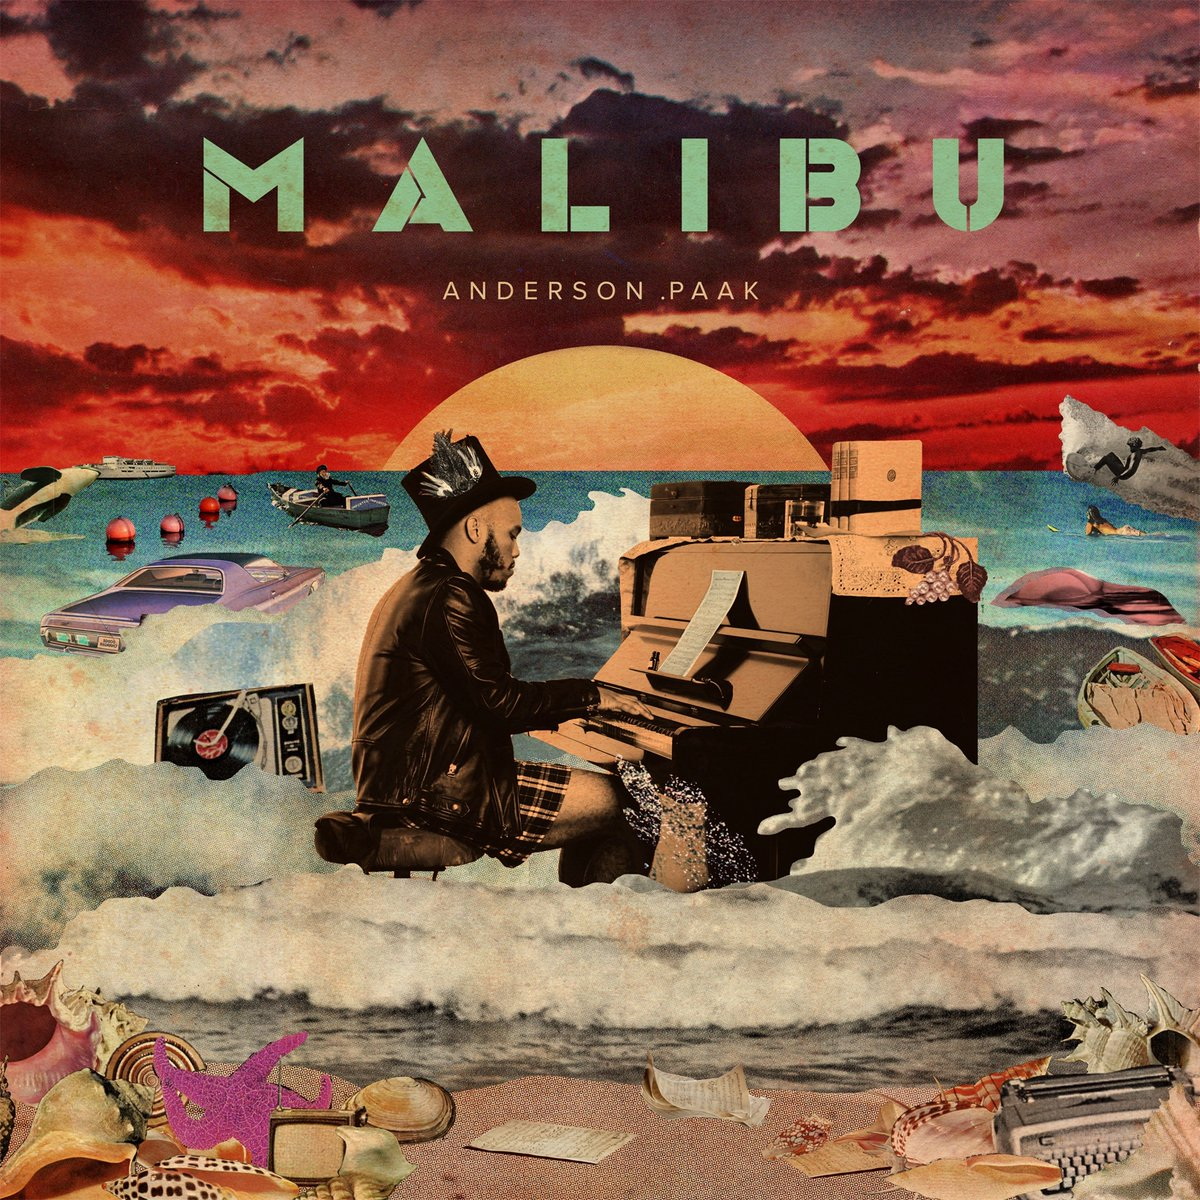 RT @OnSMASH: .@AndersonPaak released #Malibu 2 years ago today!  Still on repeat 🔂 https://t.co/YL3UYxmKCh